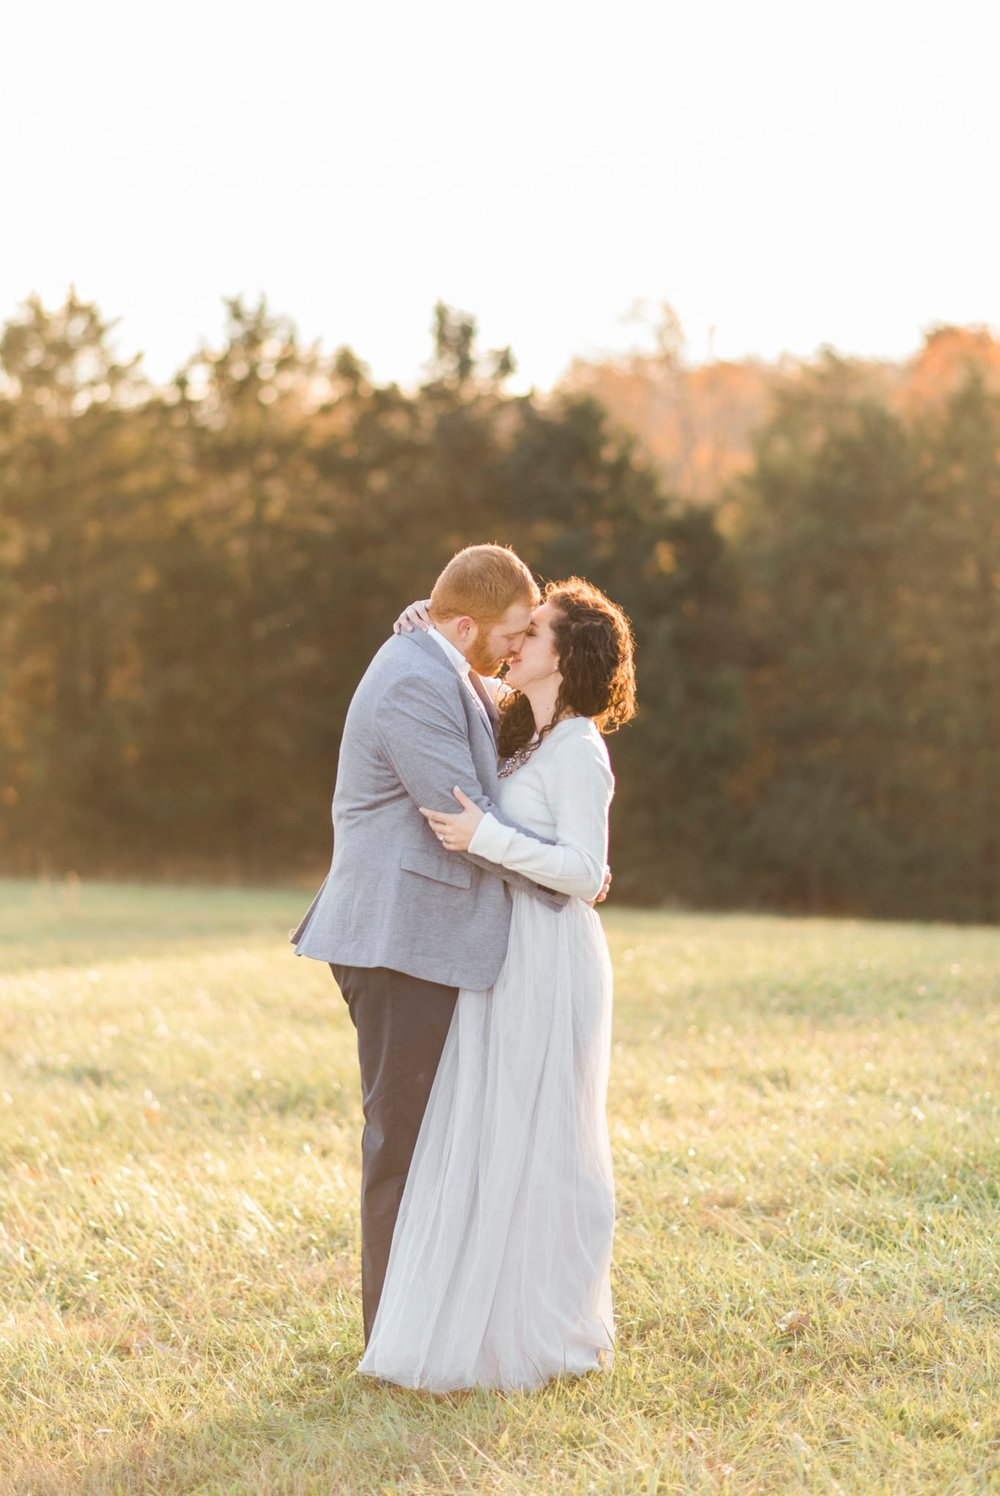 SorellaFarms_EngagementSession_VirginiaweddingPhotographer 55.jpg